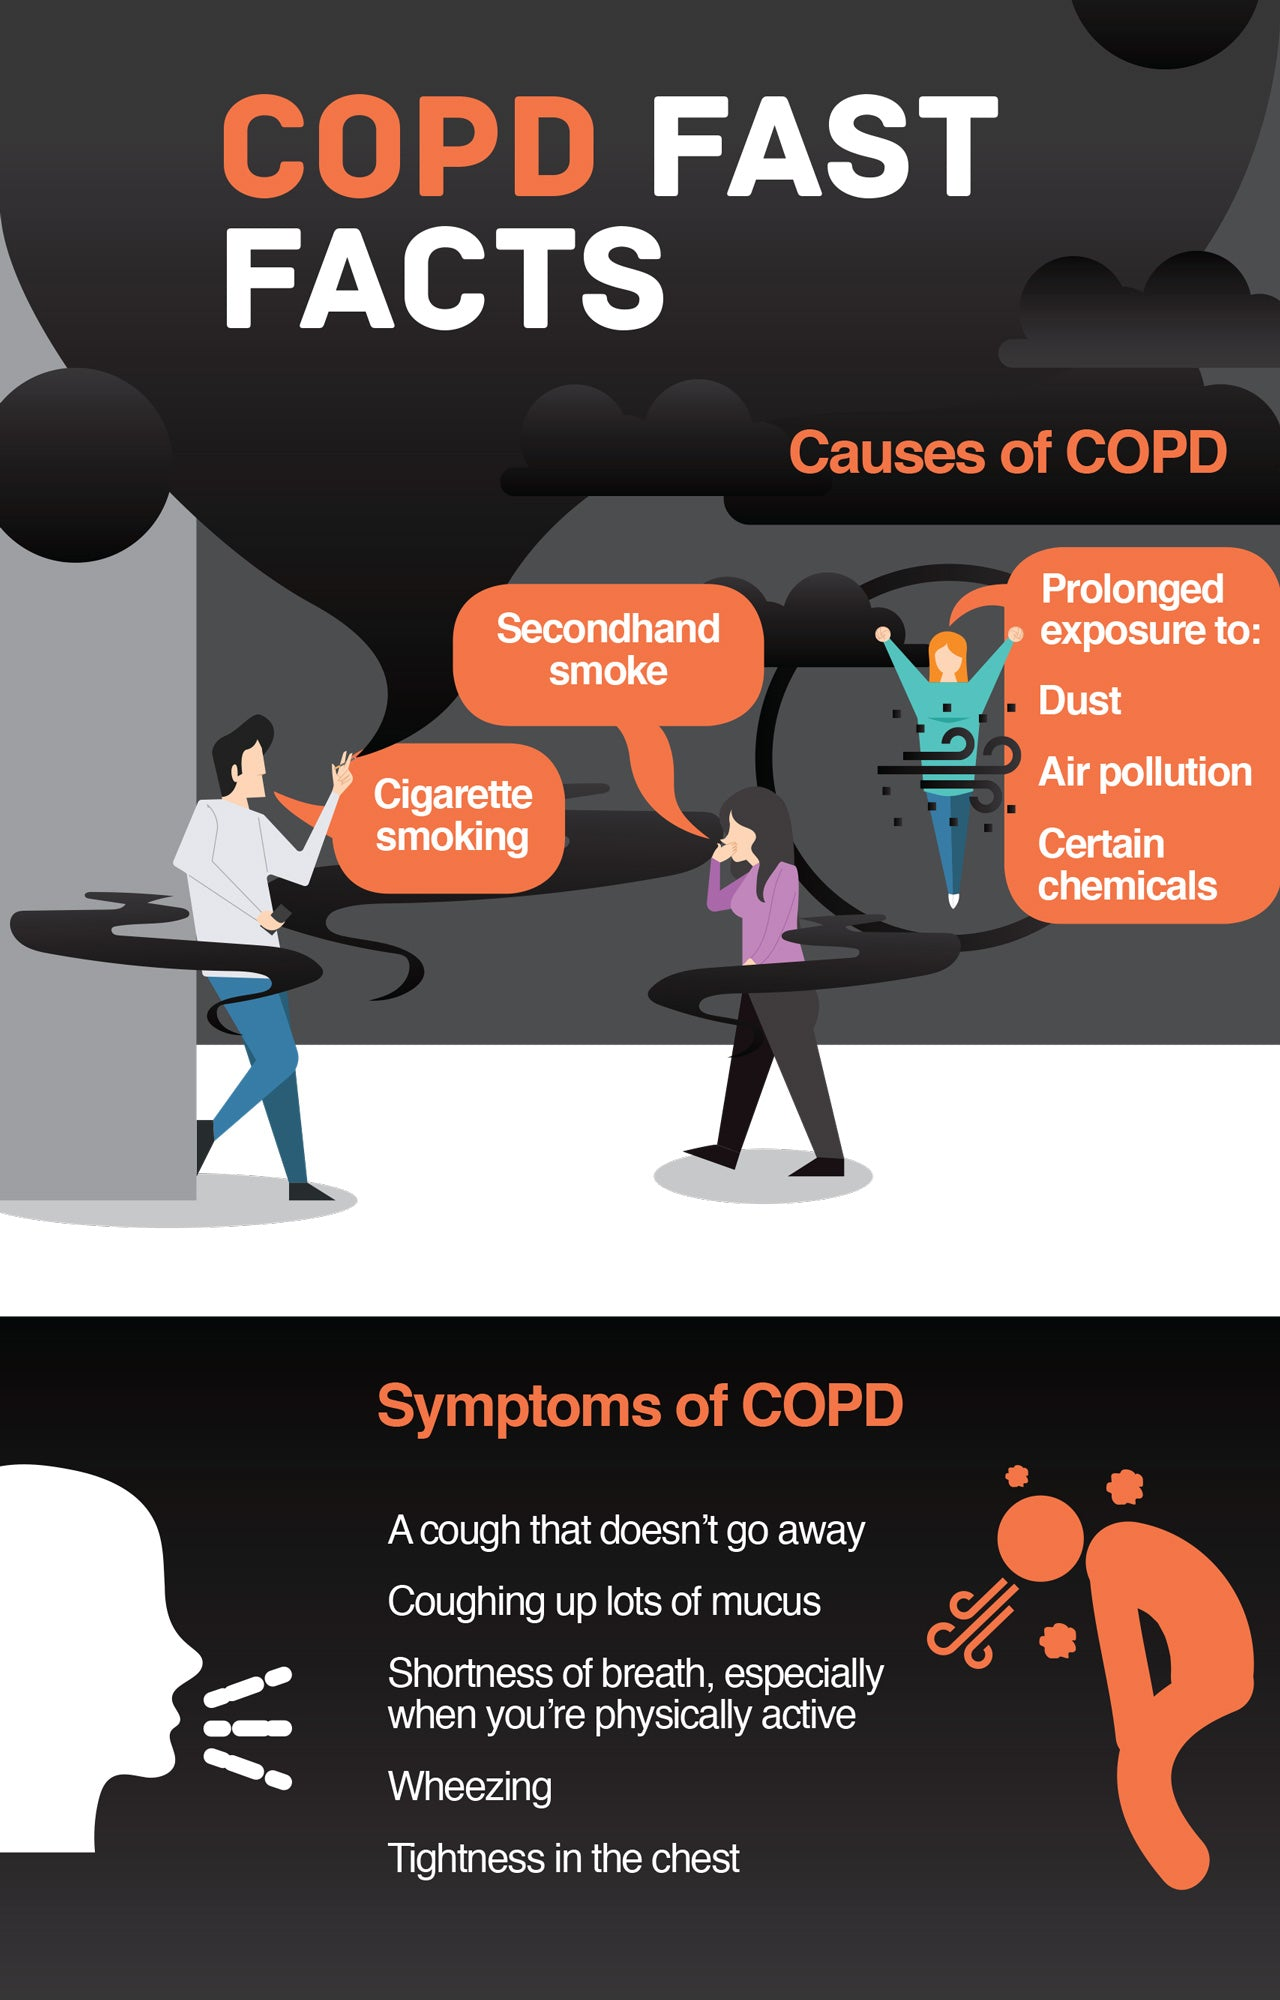 COPD Fast Facts and Symptoms